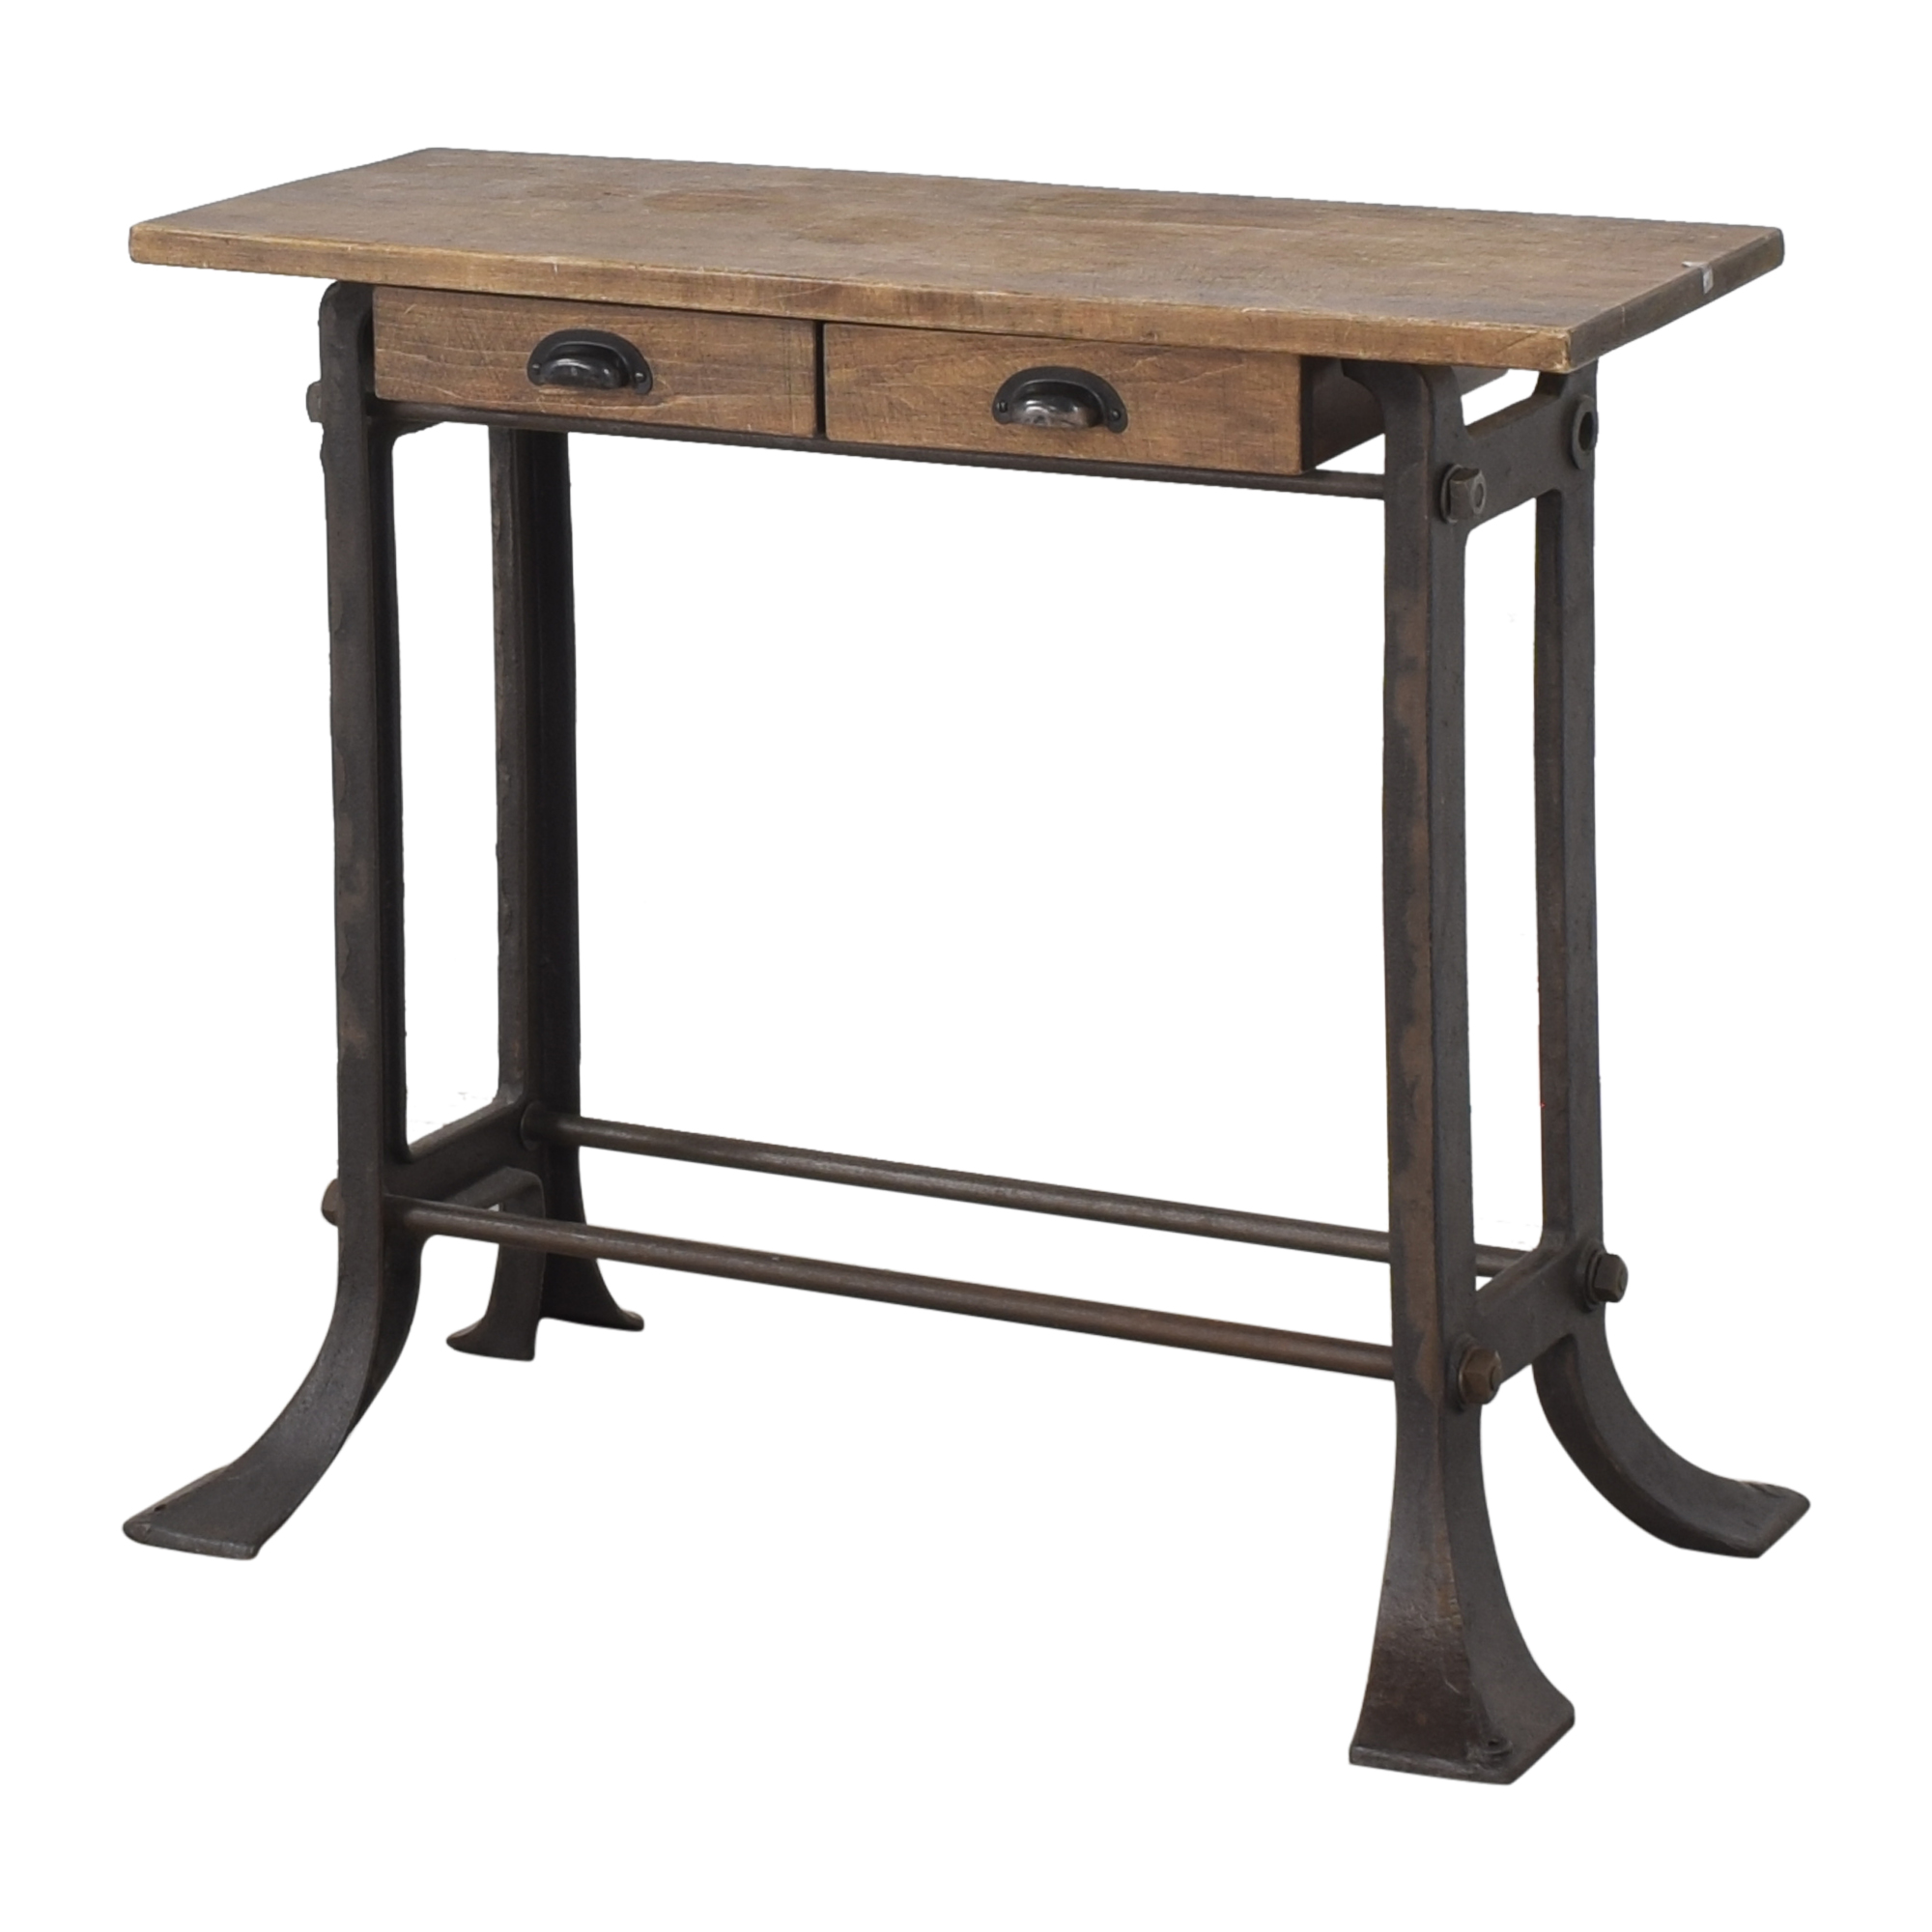 Get Back Get Back Industrial Console Table on sale